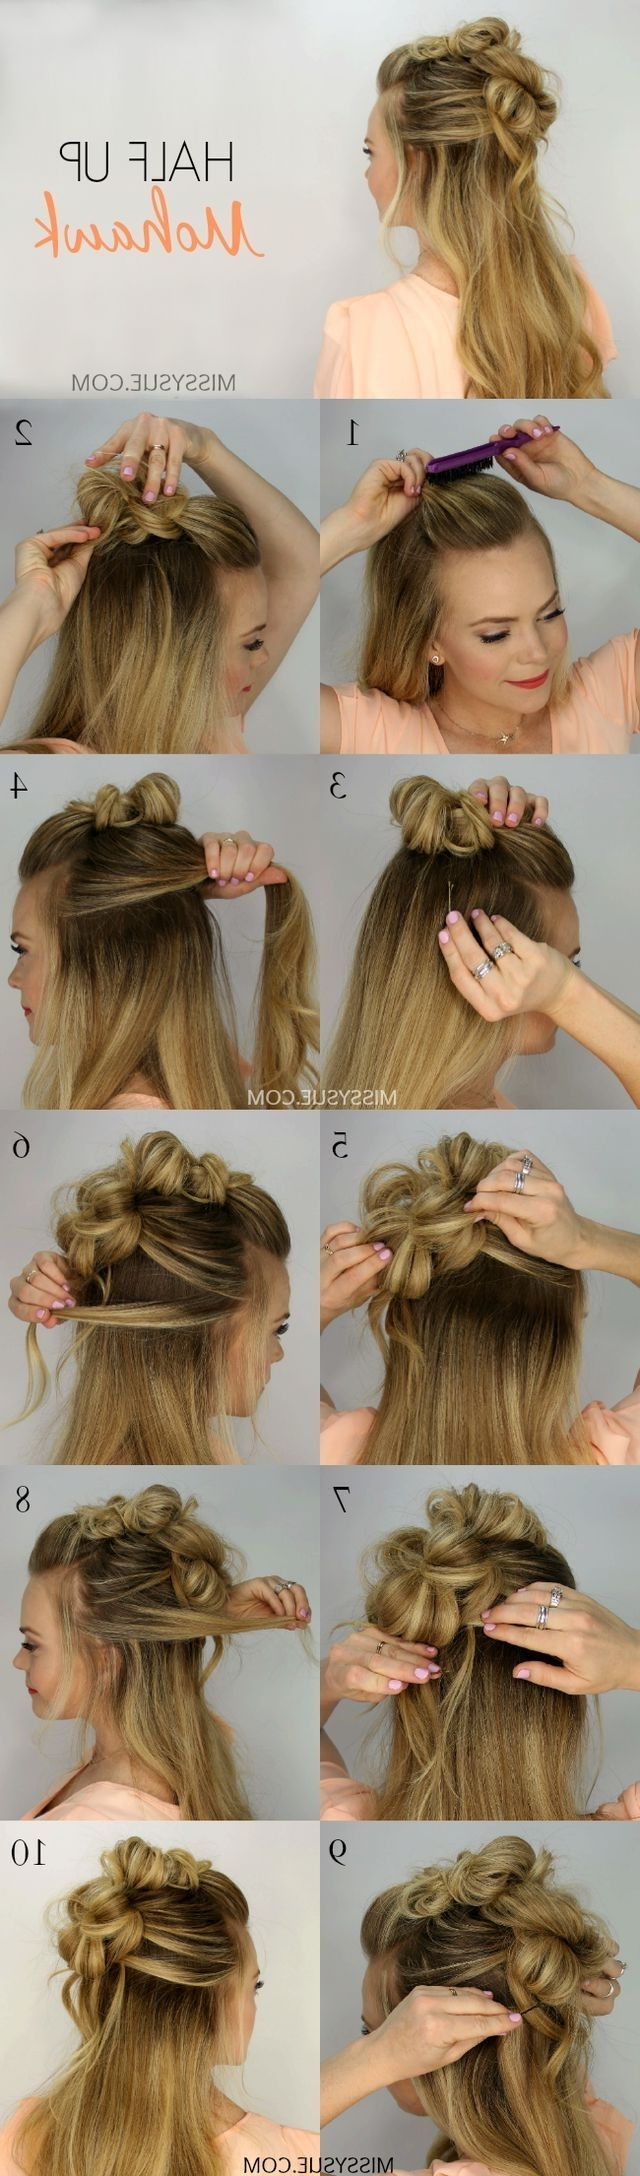 Mohawk Hairstyles (View 8 of 15)